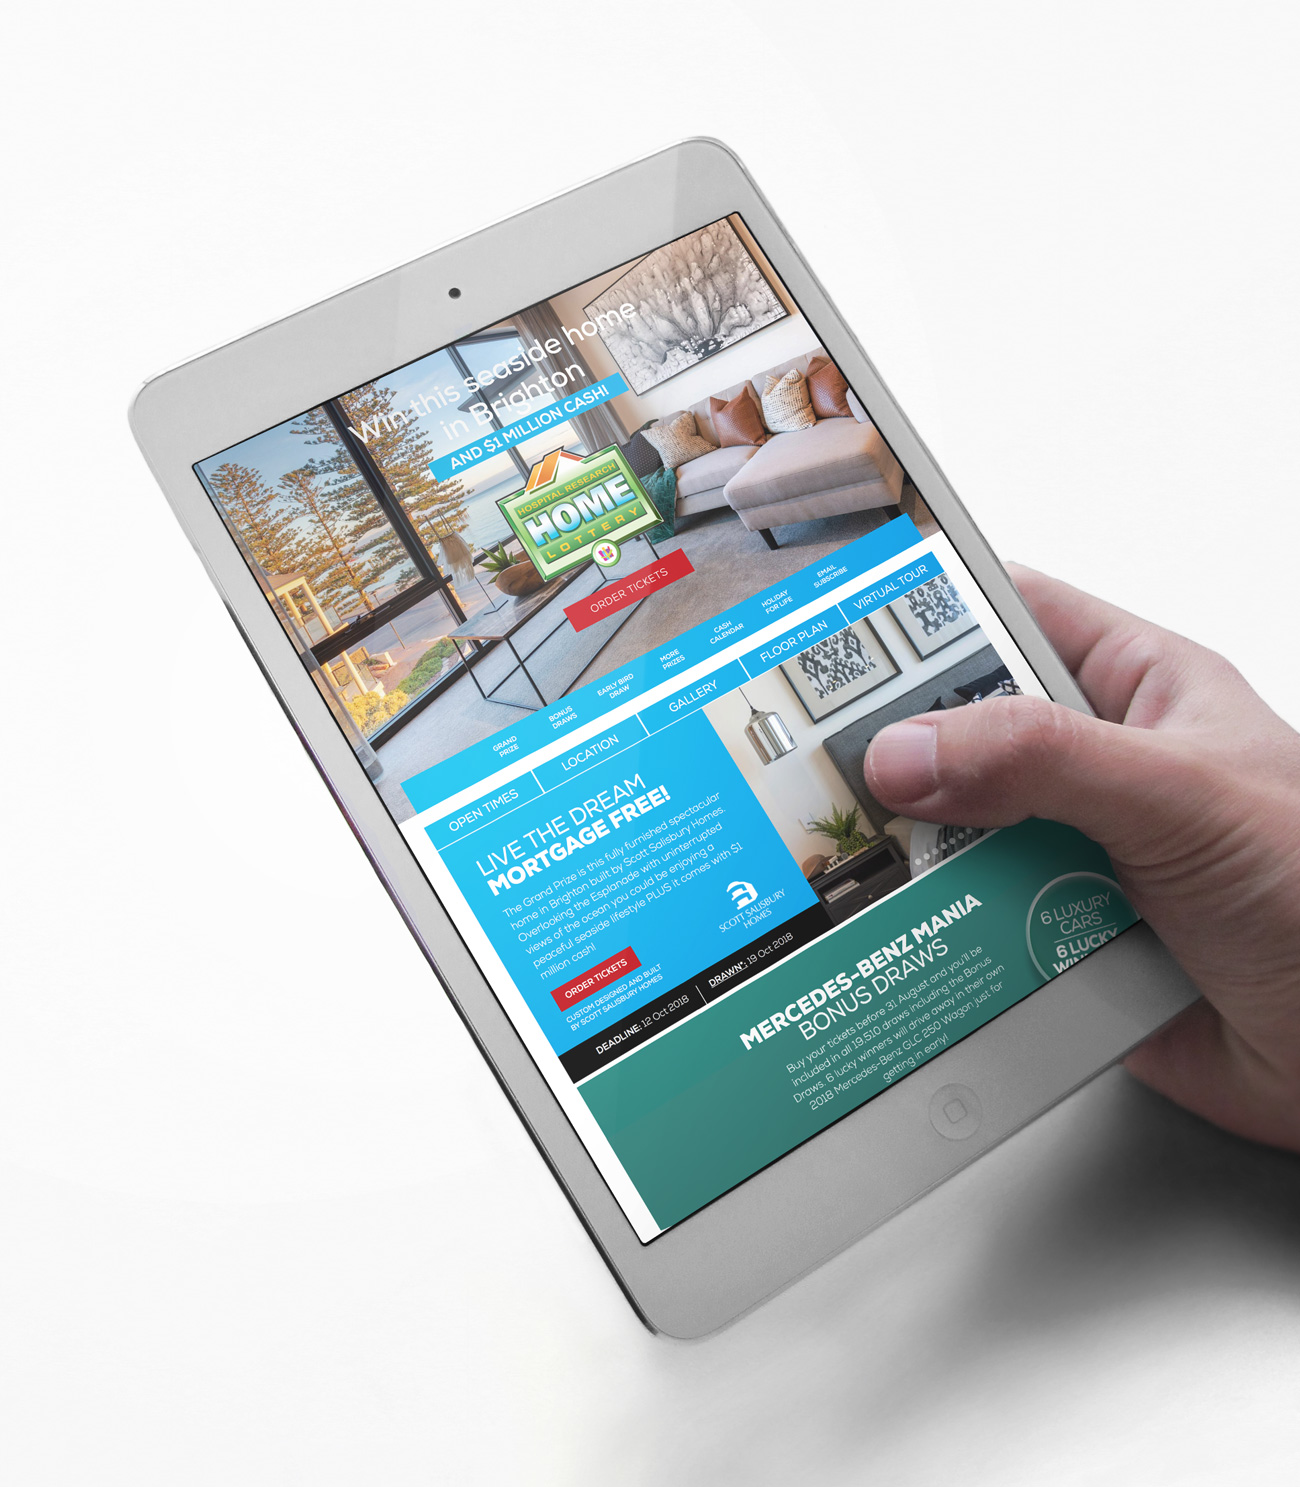 home-lottery-website-tablet